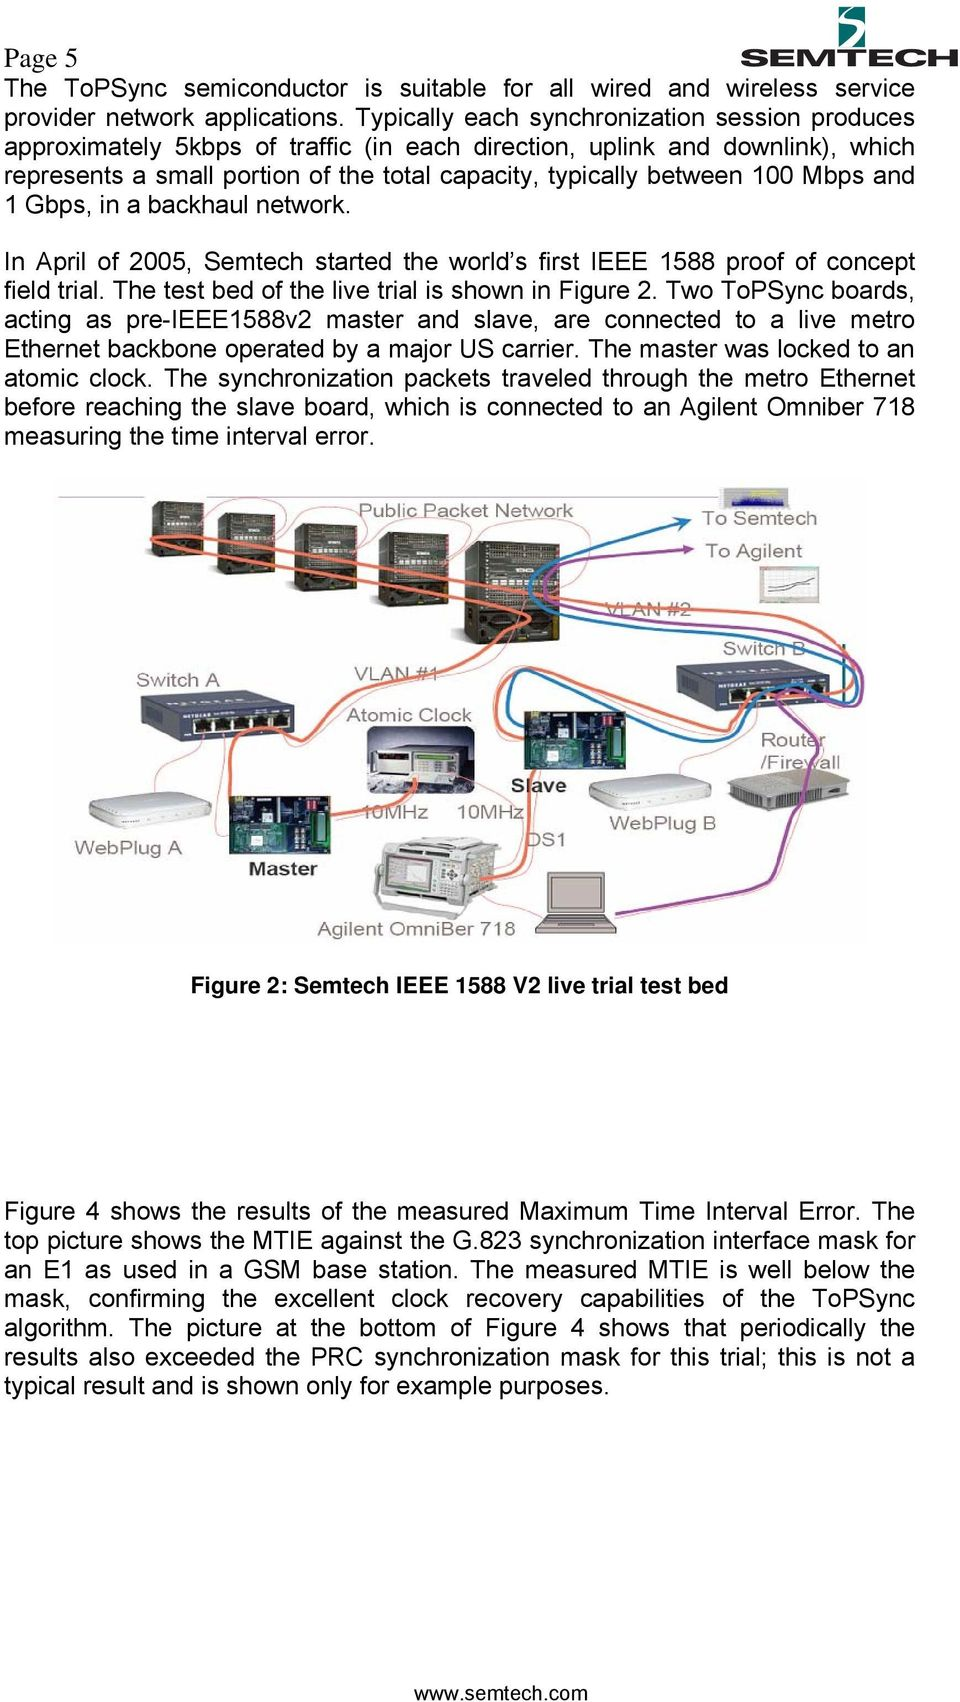 Mbps and 1 Gbps, in a backhaul network. In April of 2005, Semtech started the world s first IEEE 1588 proof of concept field trial. The test bed of the live trial is shown in Figure 2.